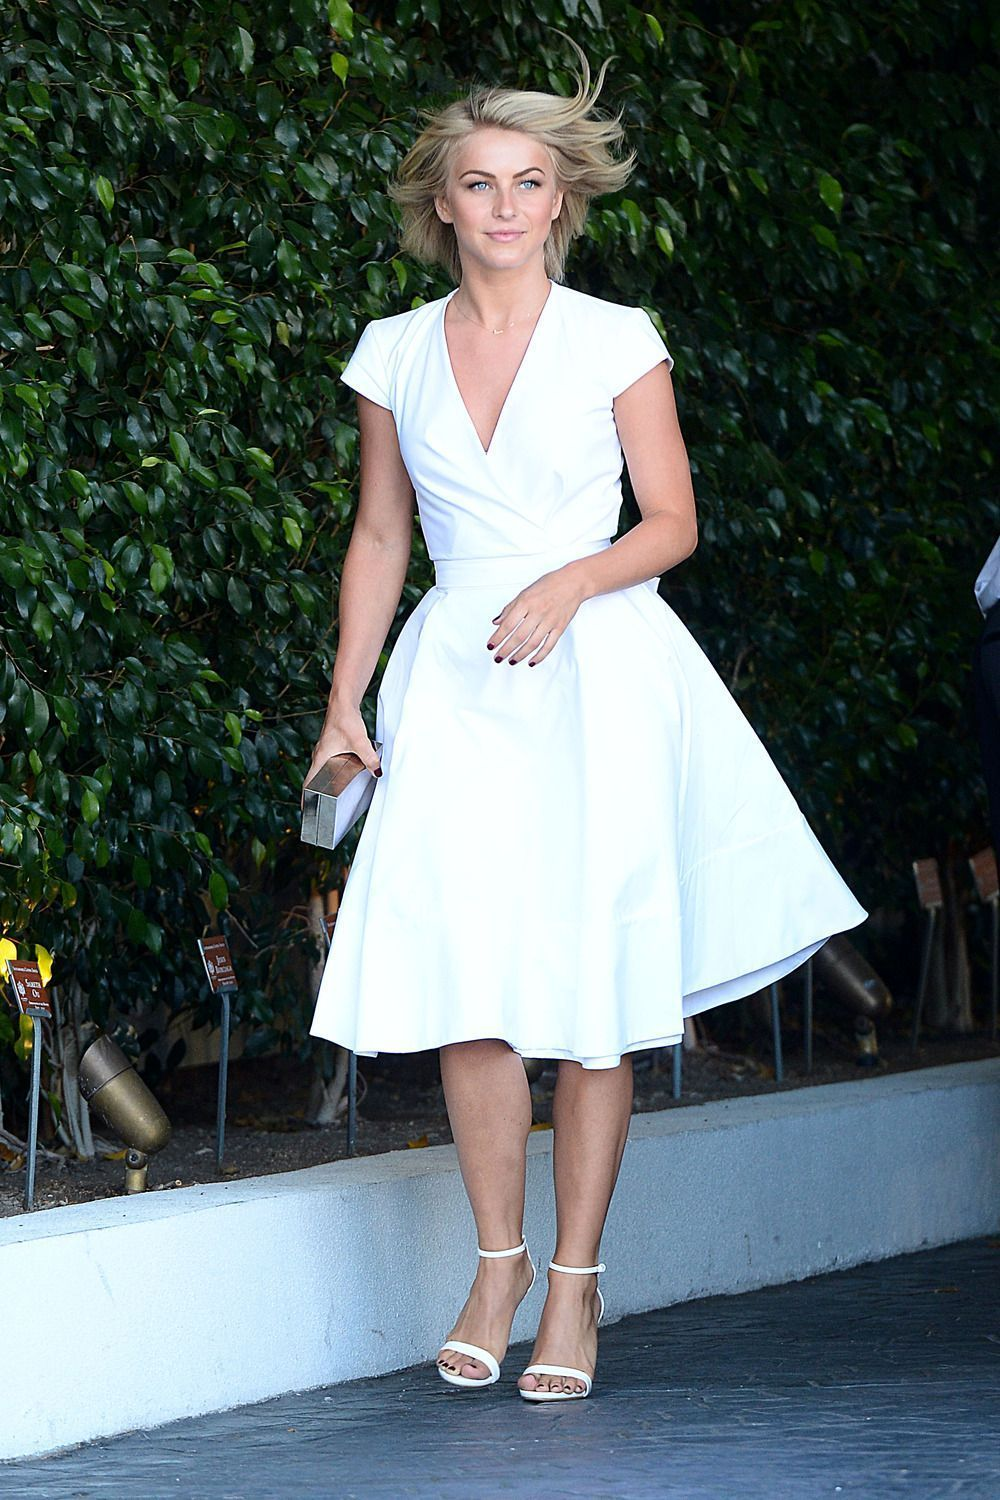 Julianne Hough in white #juliannehoughstyle Julianne Hough in white #juliannehoughstyle Julianne Hough in white #juliannehoughstyle Julianne Hough in white #juliannehoughstyle Julianne Hough in white #juliannehoughstyle Julianne Hough in white #juliannehoughstyle Julianne Hough in white #juliannehoughstyle Julianne Hough in white #juliannehoughstyle